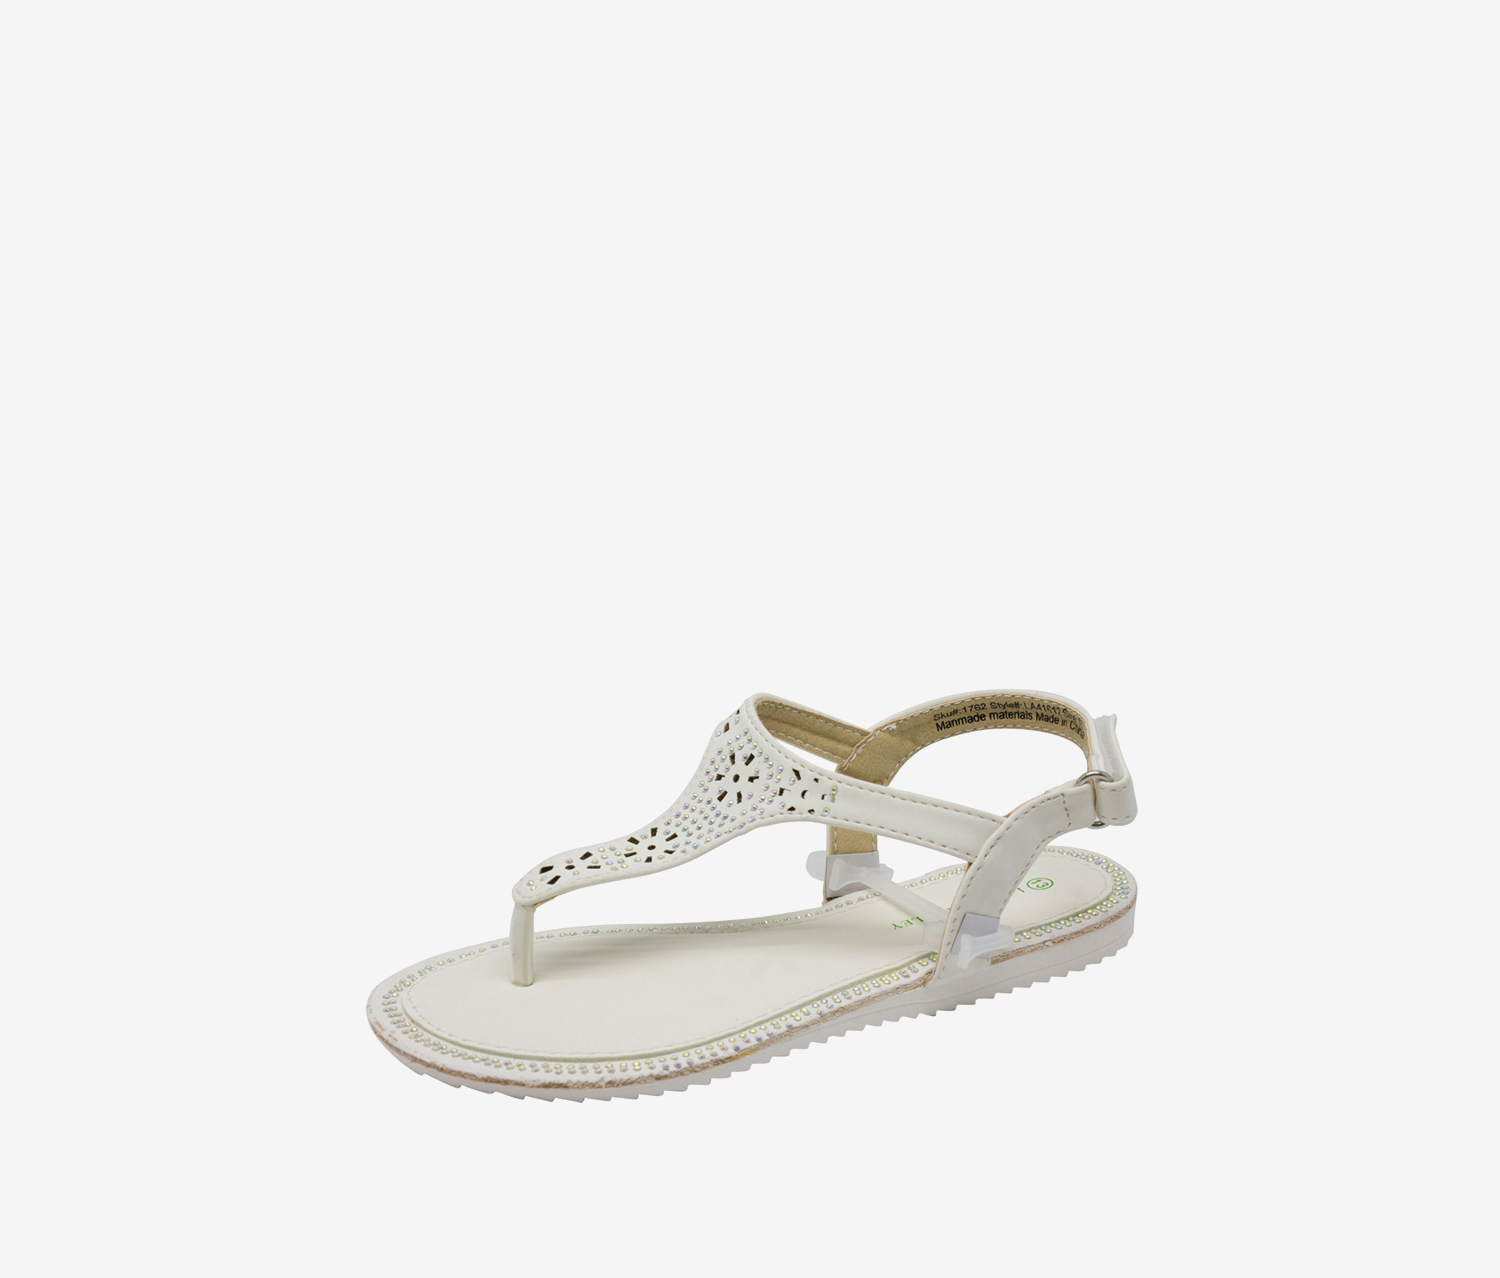 Laura Ashley Girl's Toddlers Beaded Sandal, White